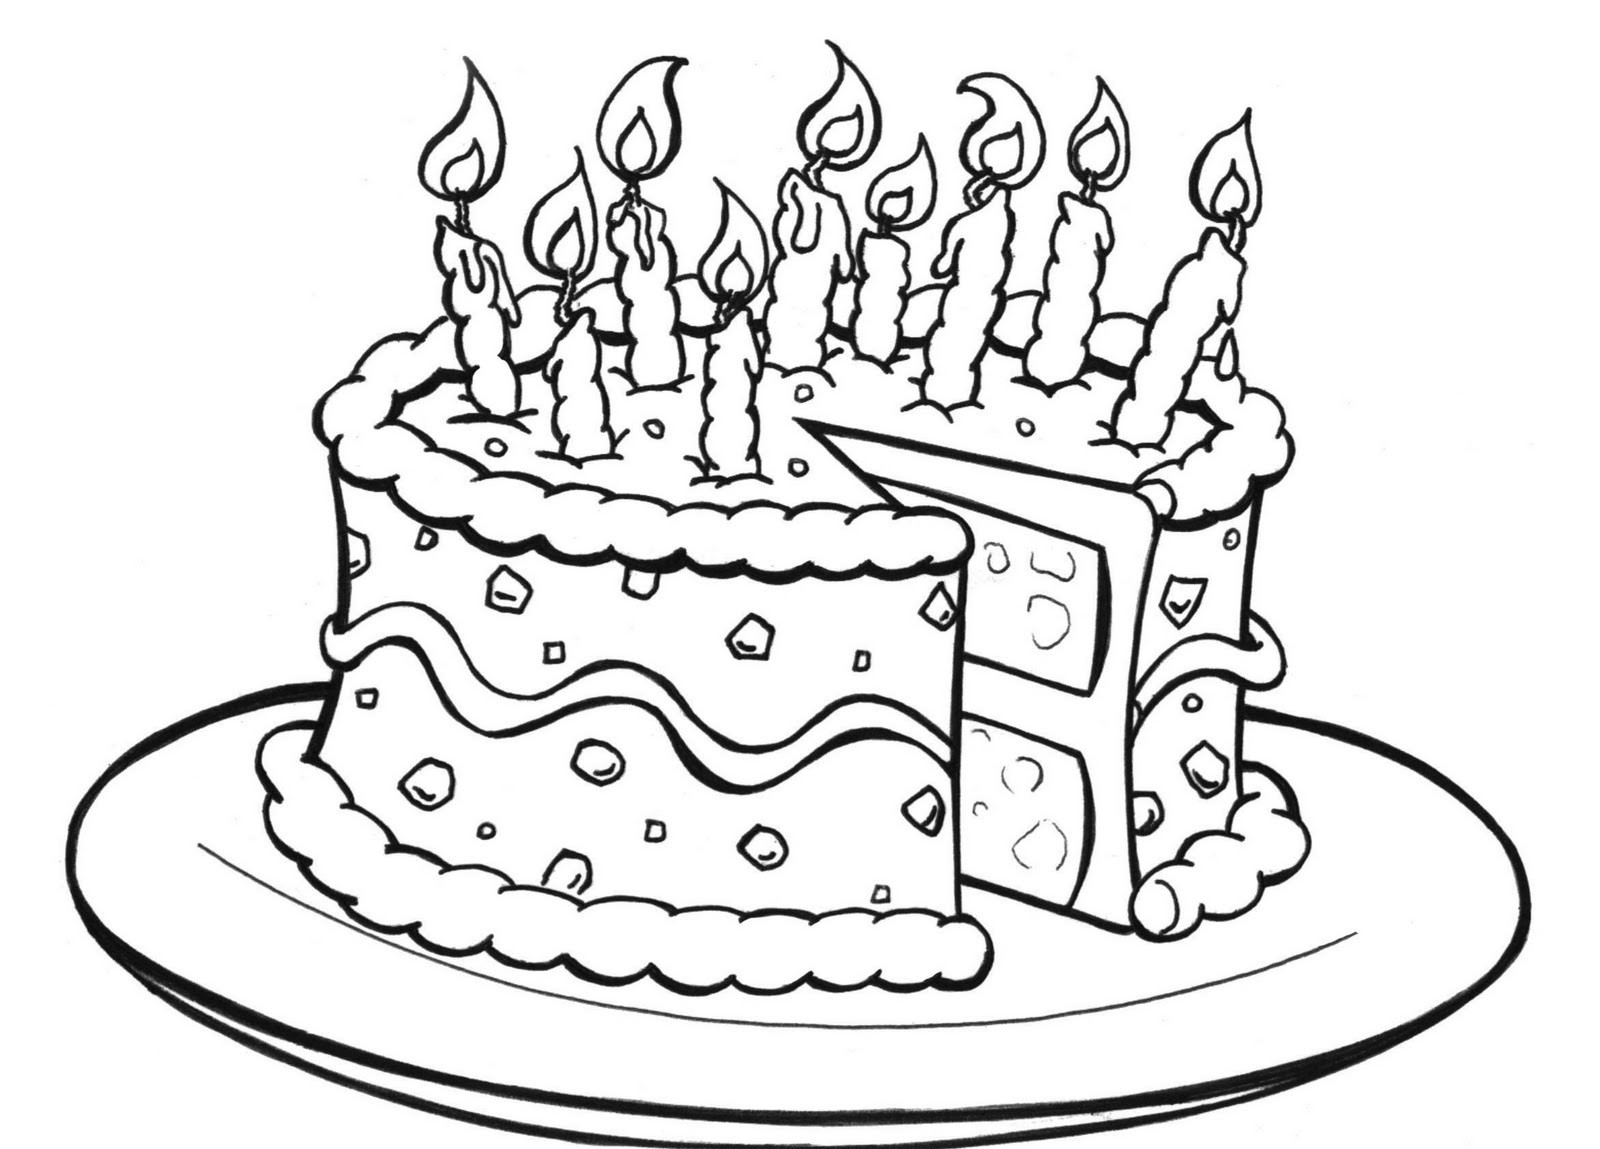 birthday coloring pages to print ; 1-birthday-cake-coloring-pages